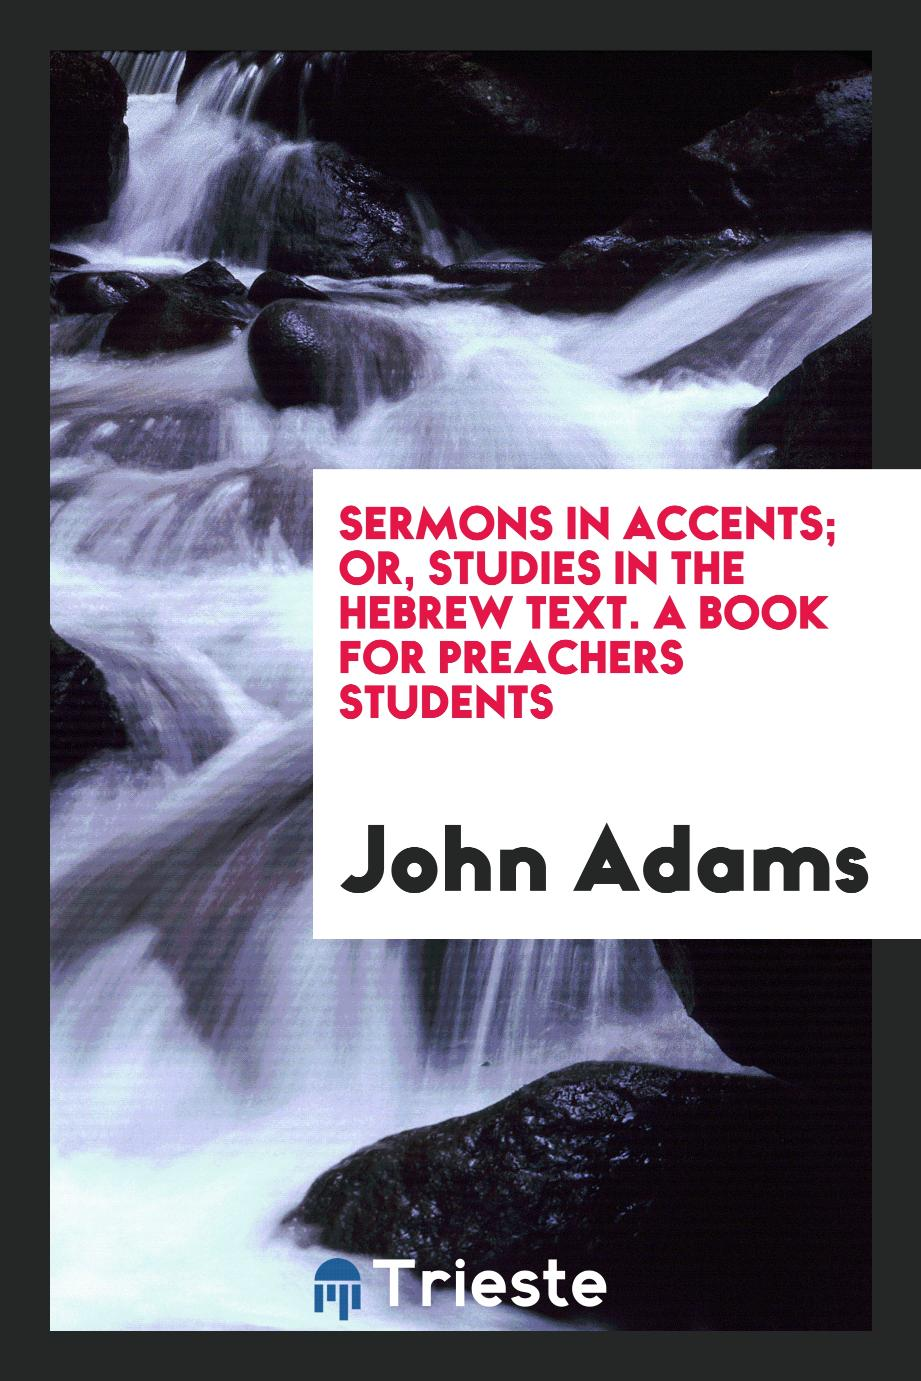 Sermons in accents; or, Studies in the Hebrew text. A book for preachers students